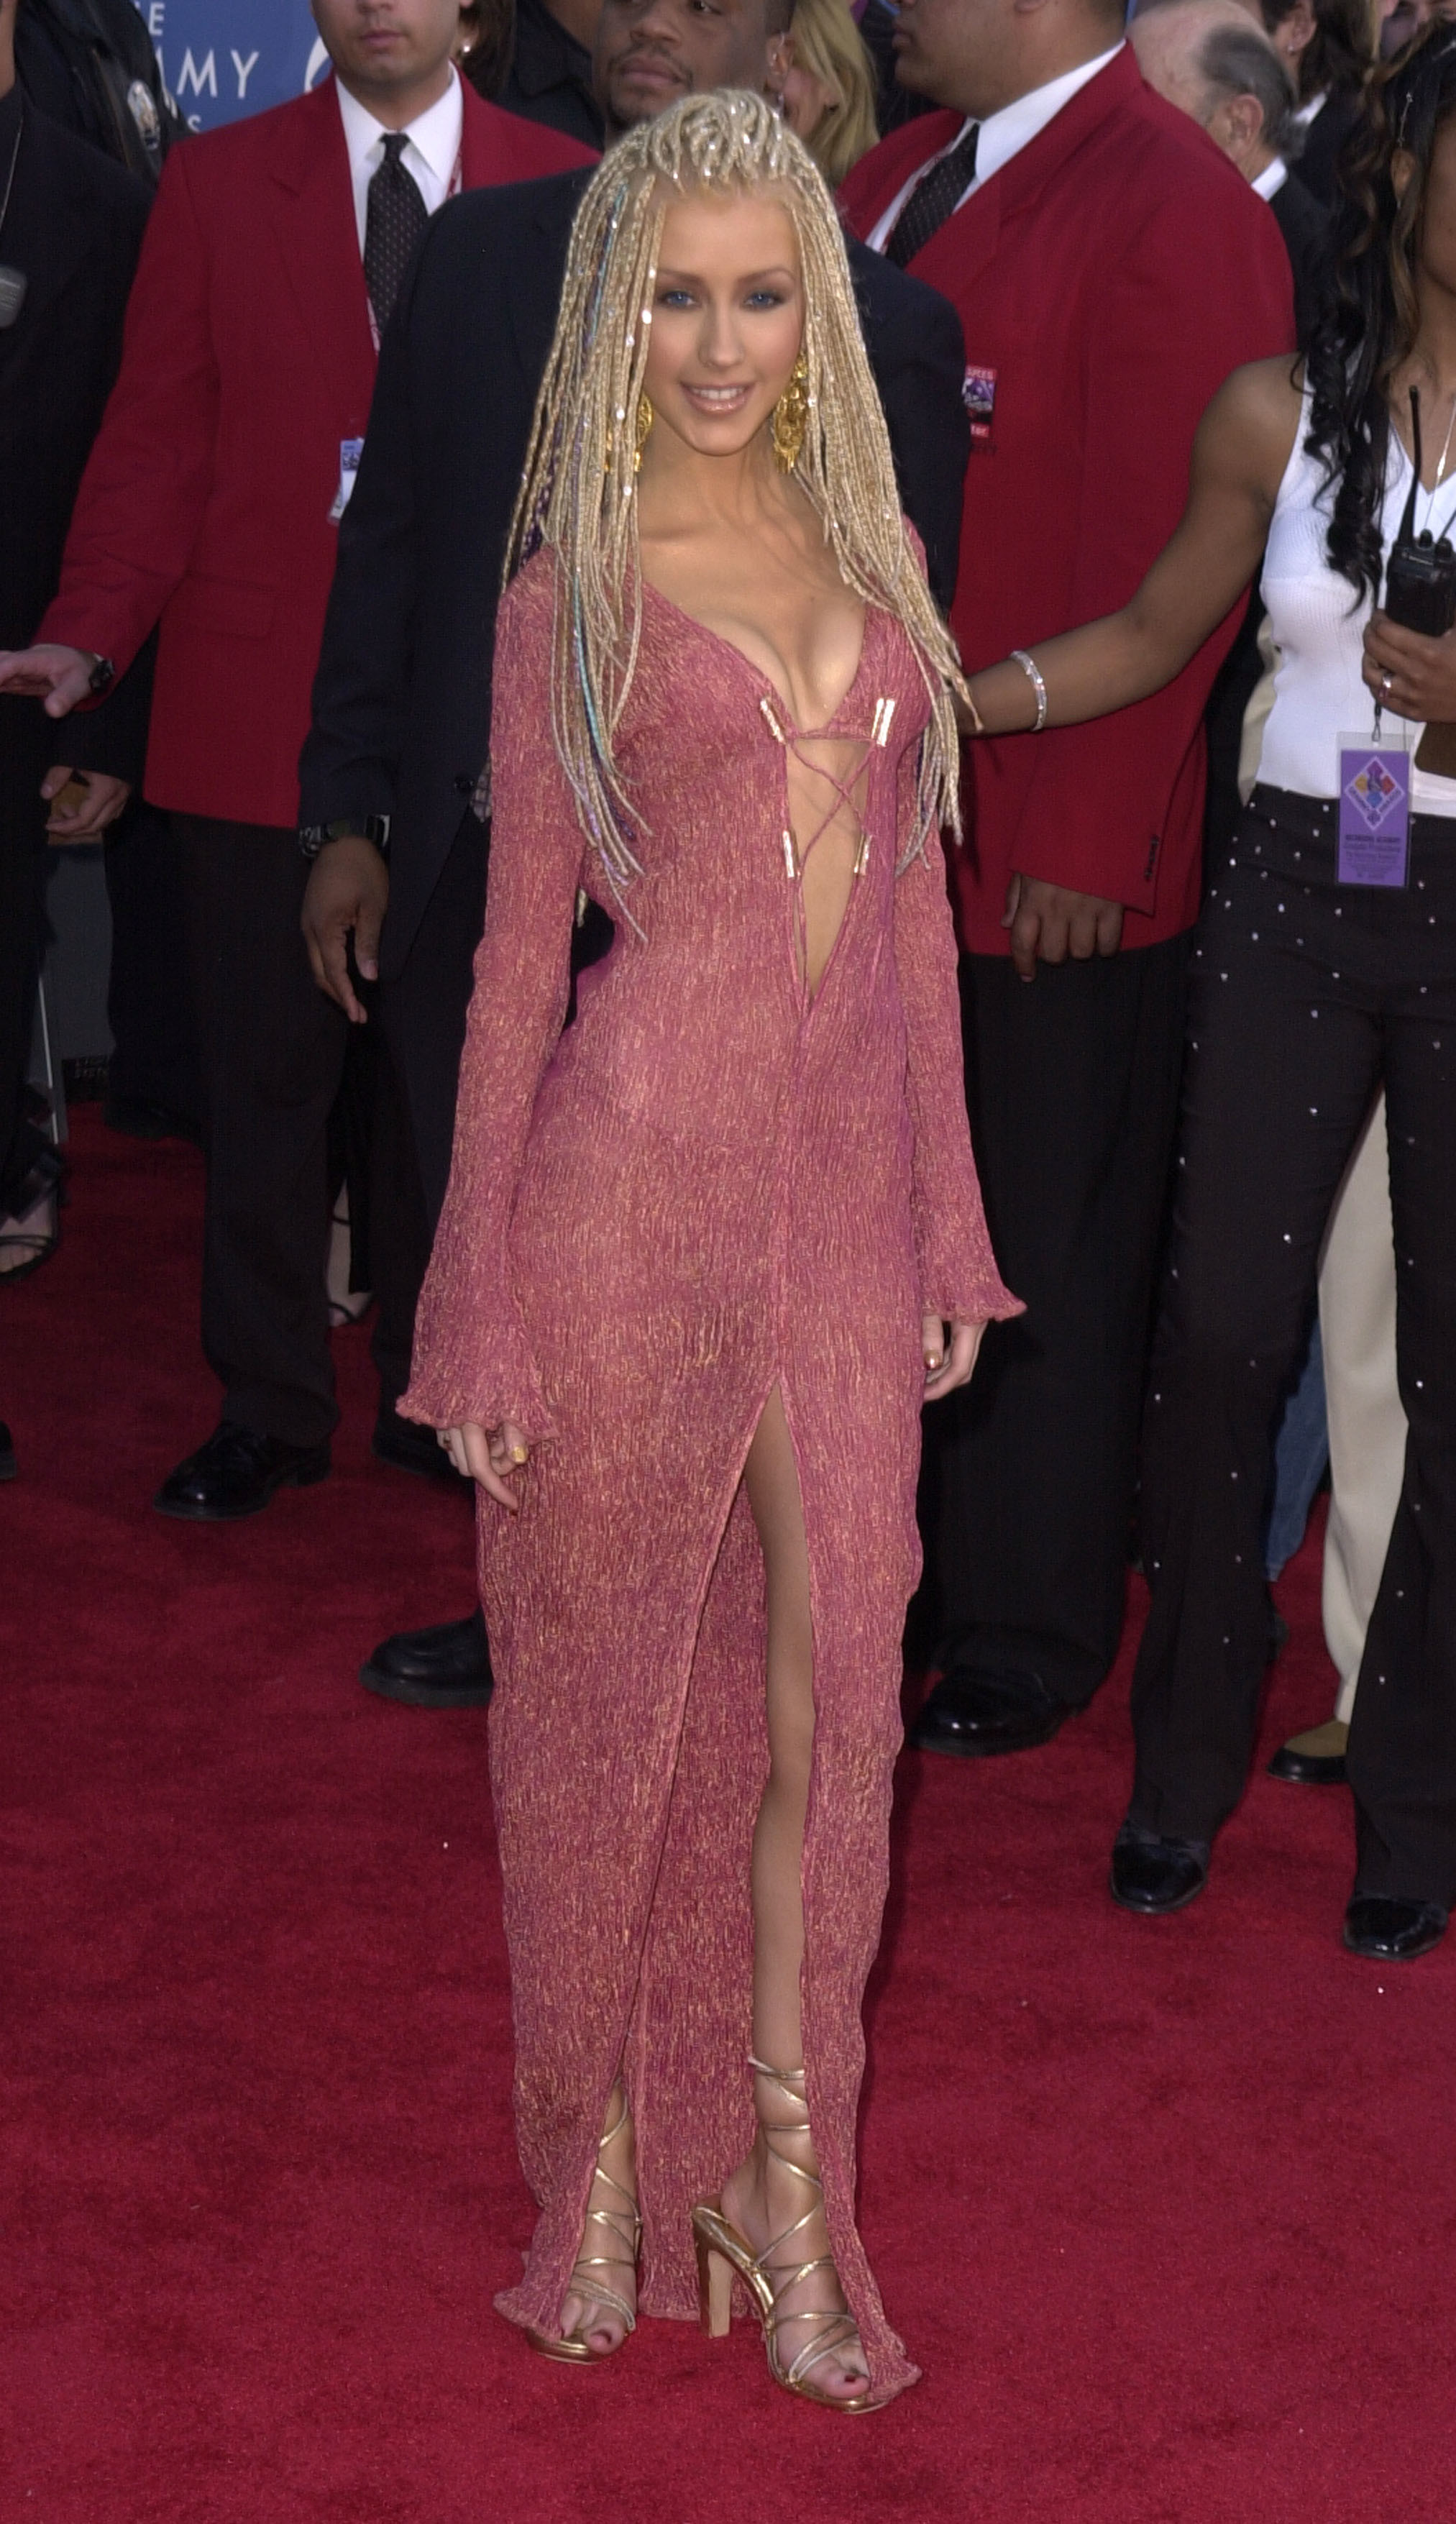 Christina Aguilera 2001 The Most Outrageous Grammy